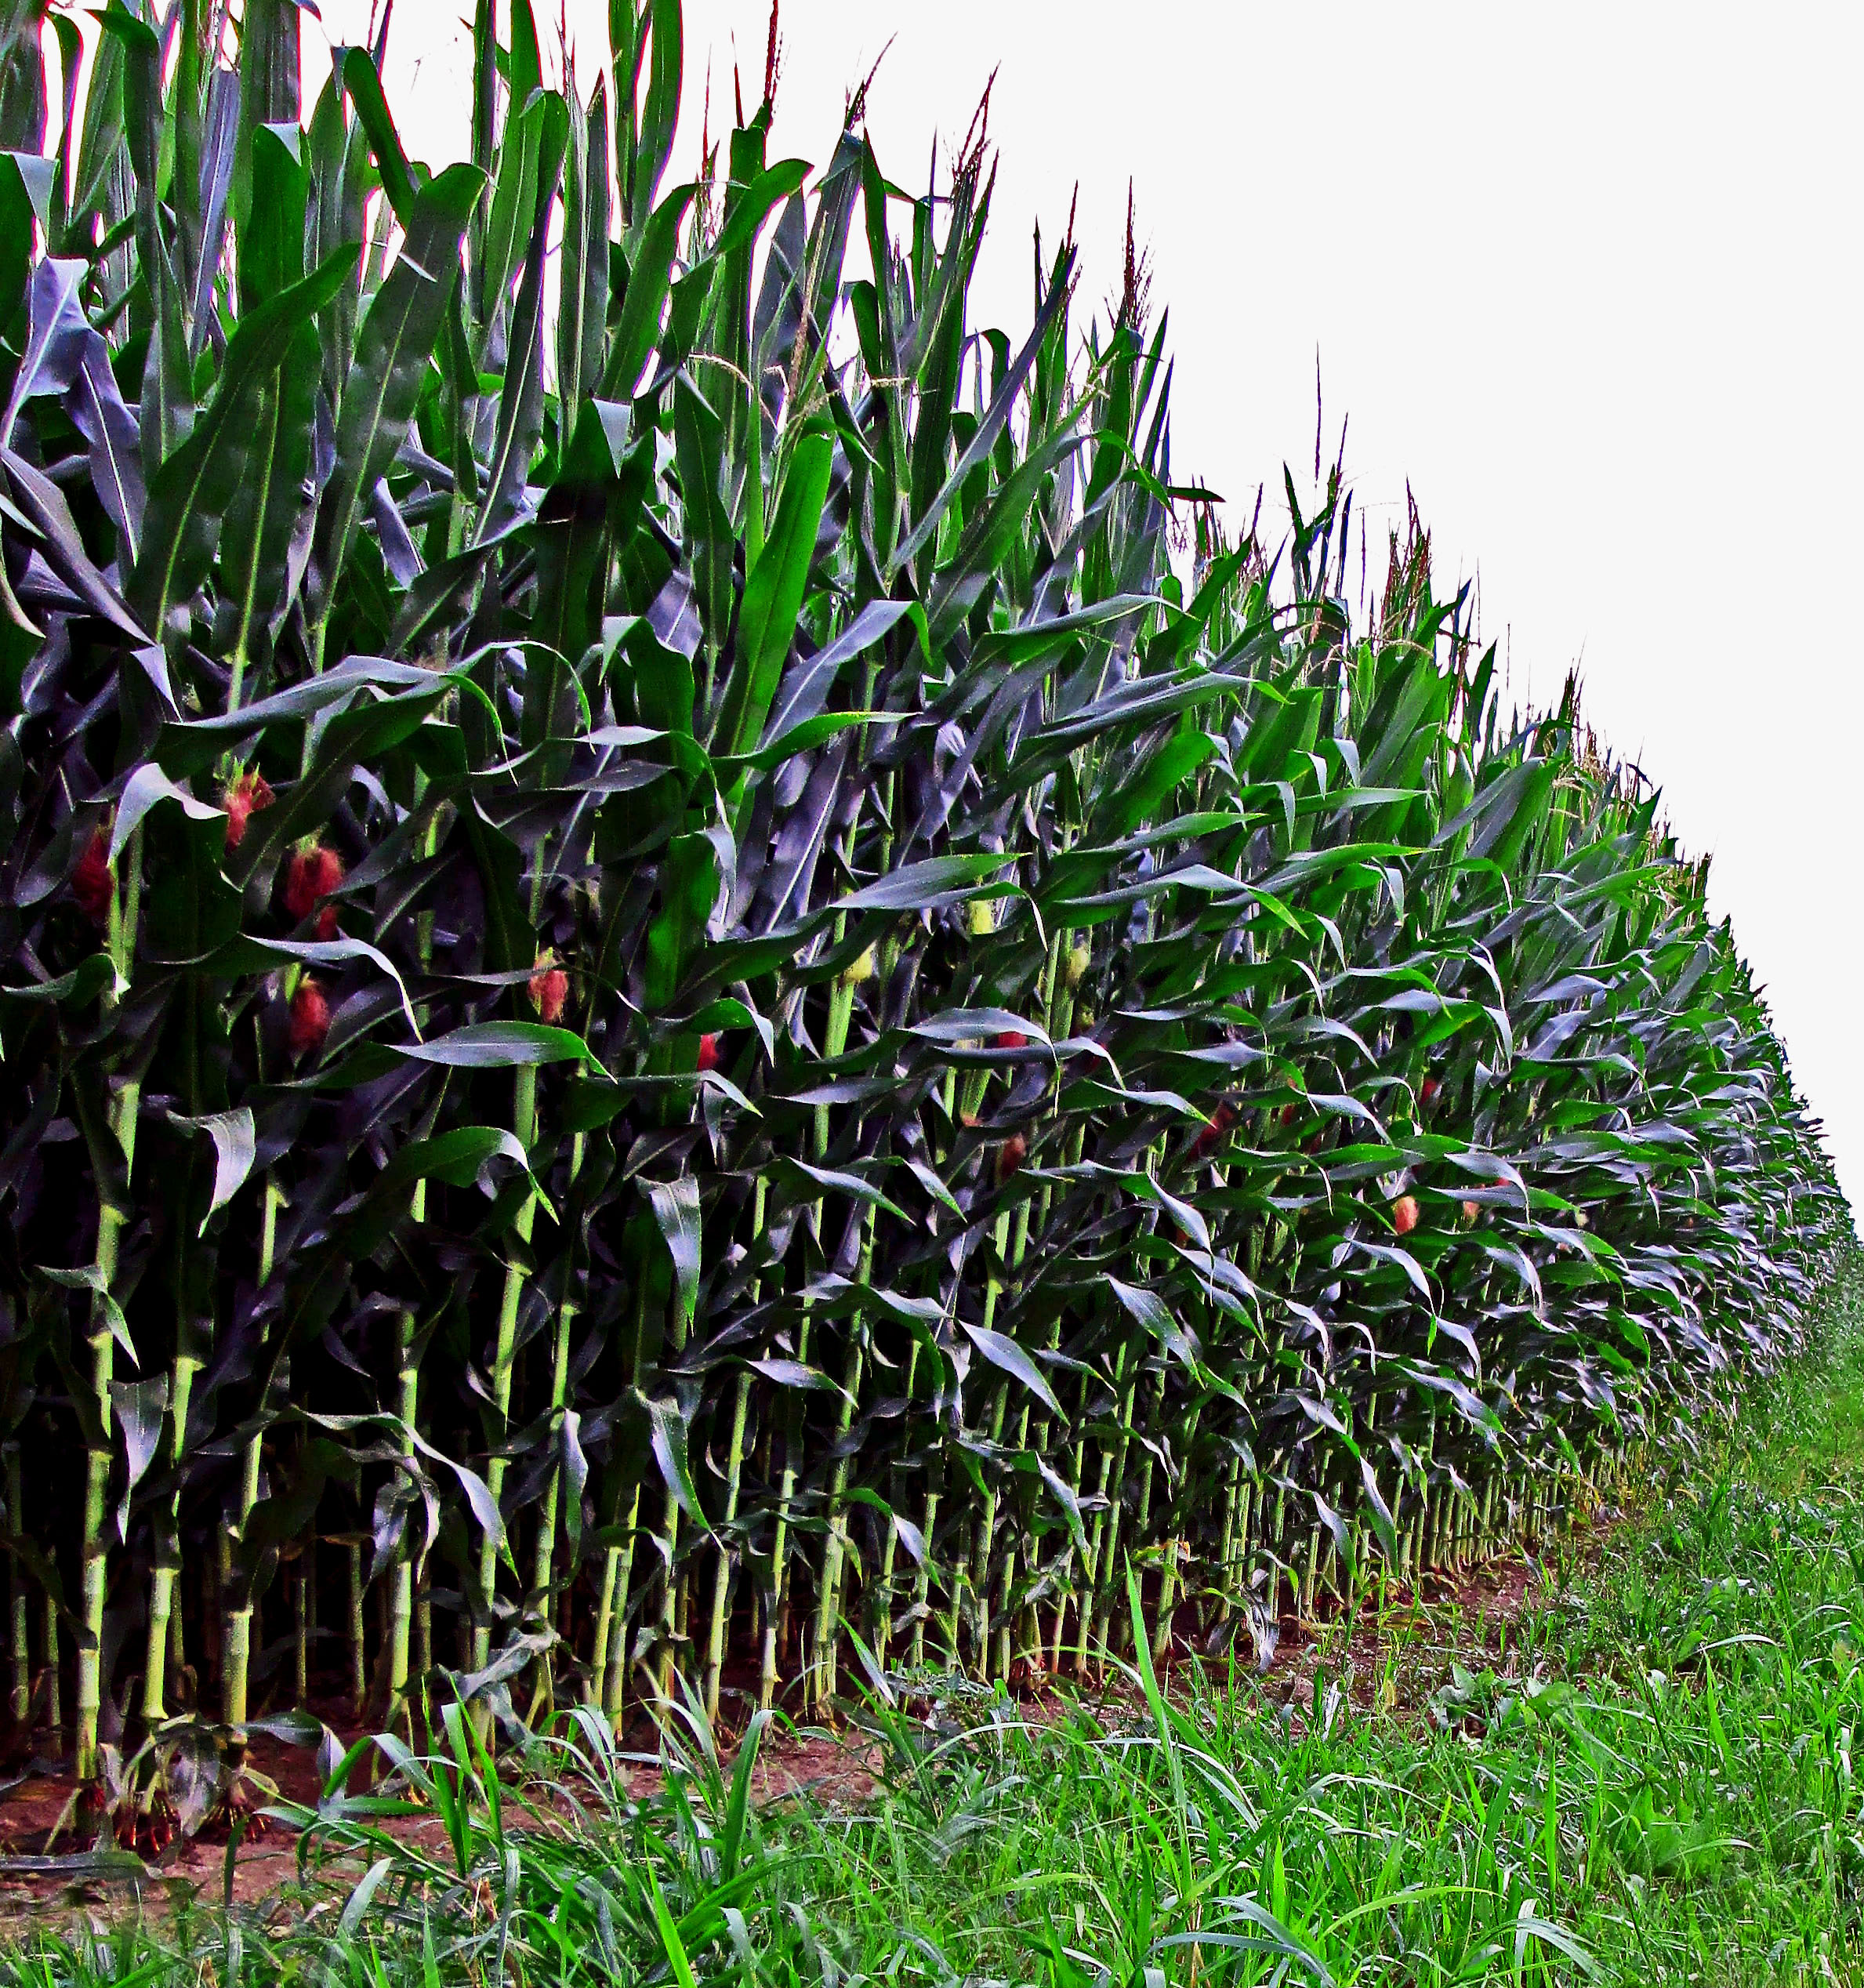 Stalks Of Corn